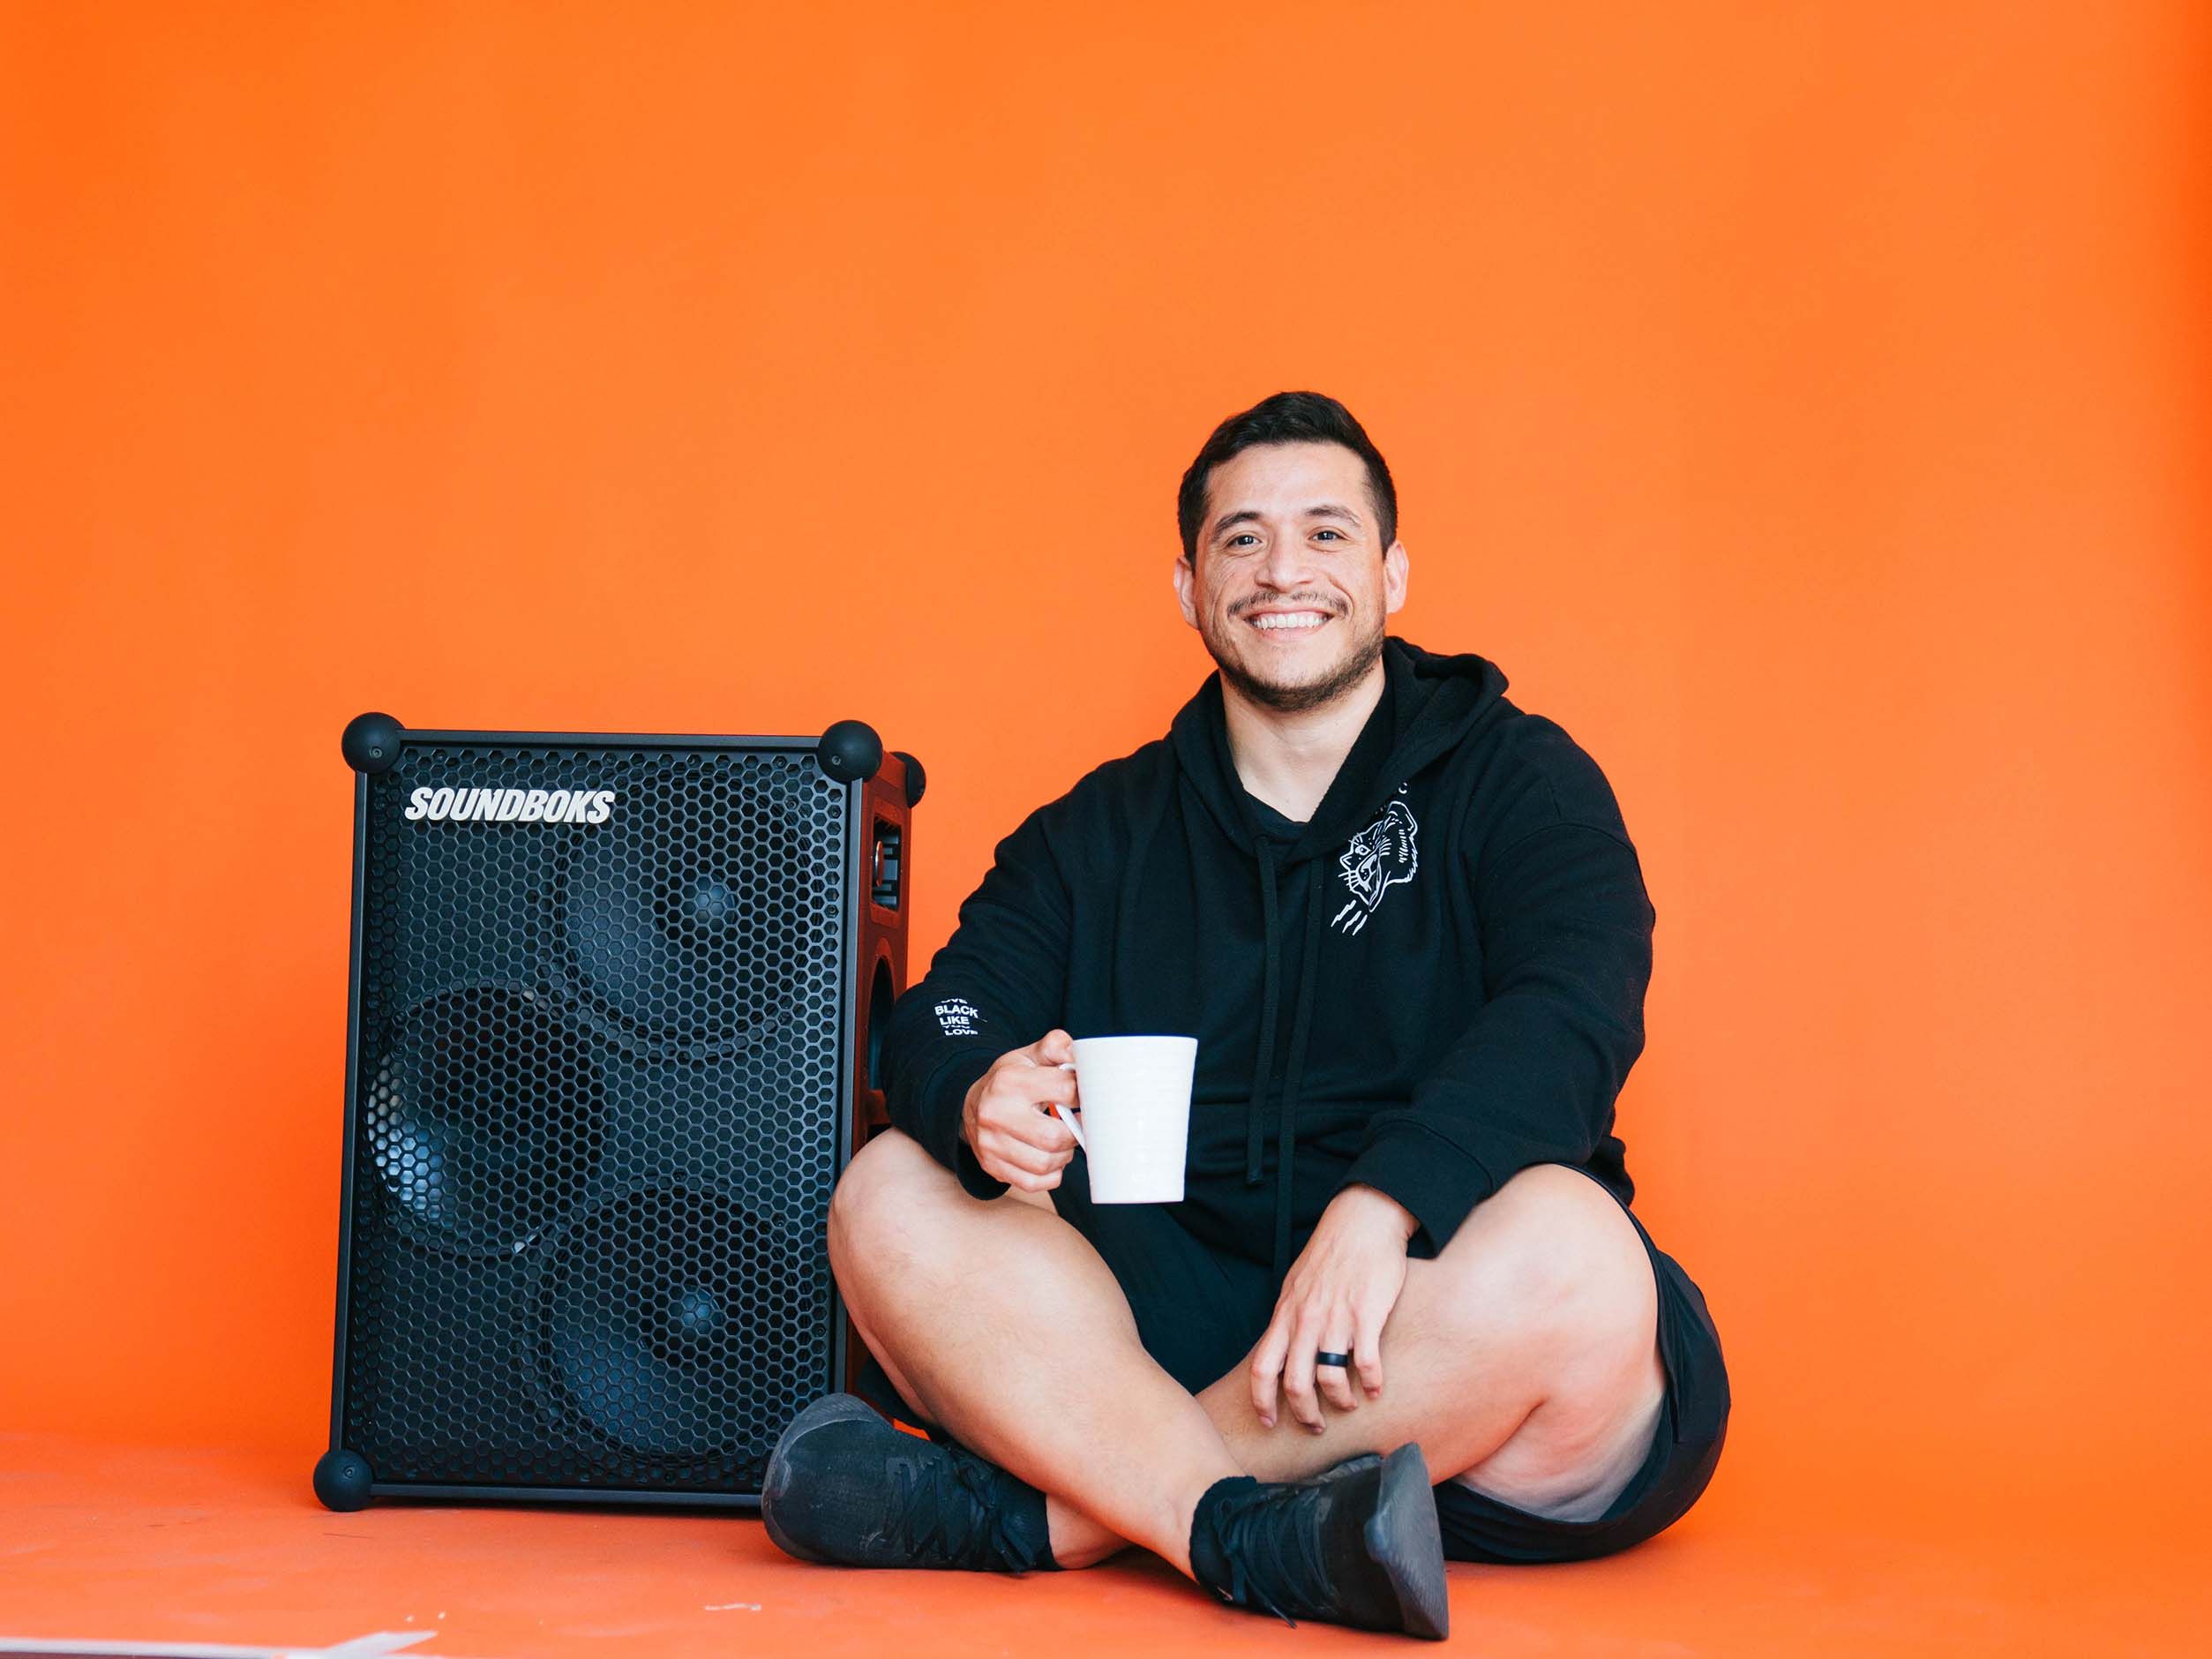 Matthew drinking a cup of coffee next to a SOUNDBOKS speaker